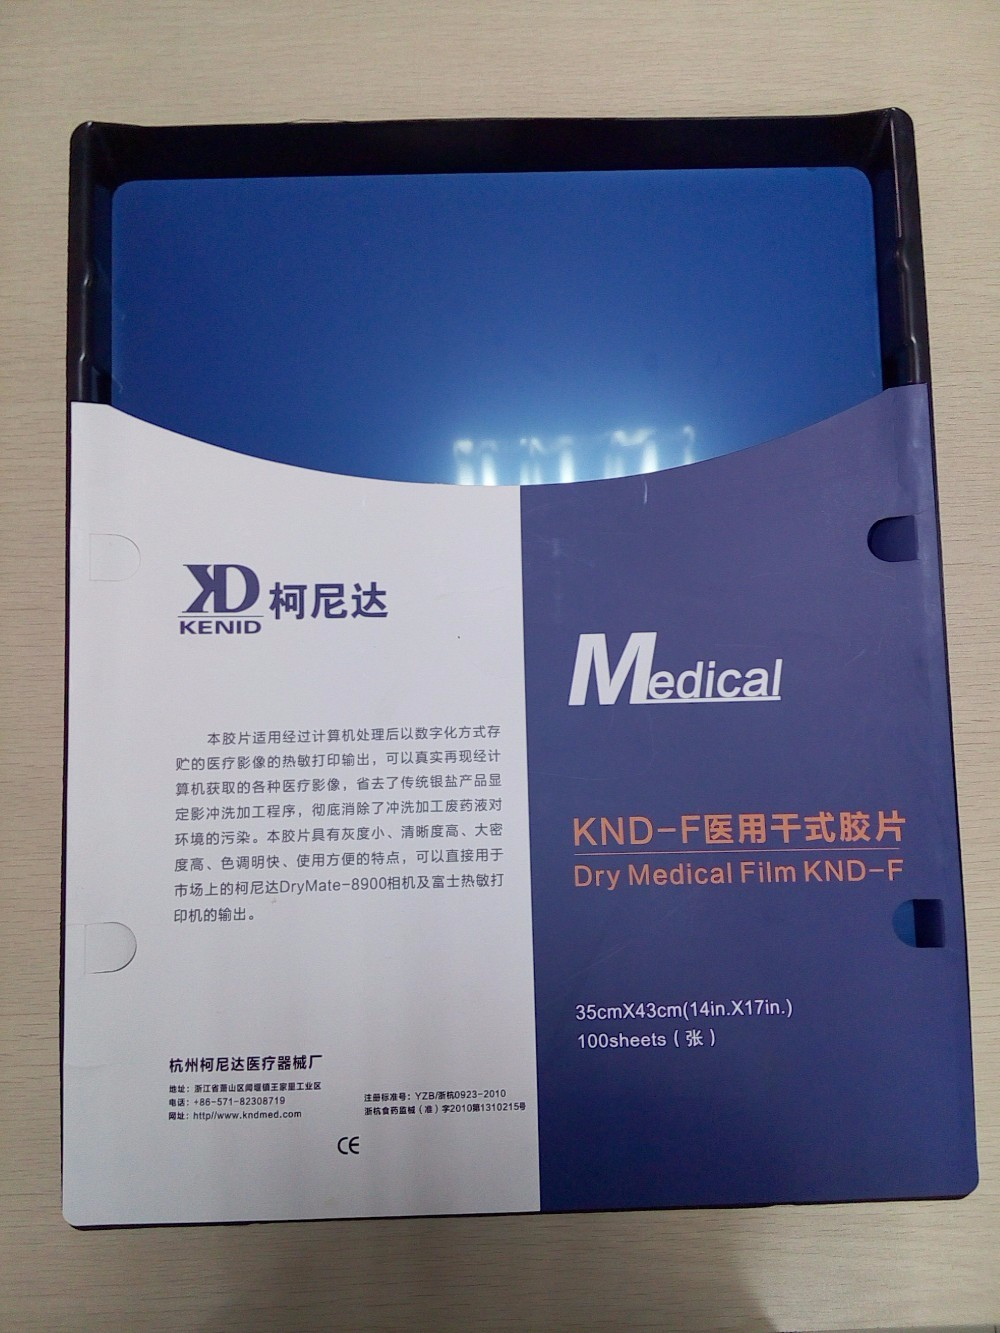 14*17 inch carestream Dryview DVB laser imaging film x ray kodak laser medical kodak x-ray film